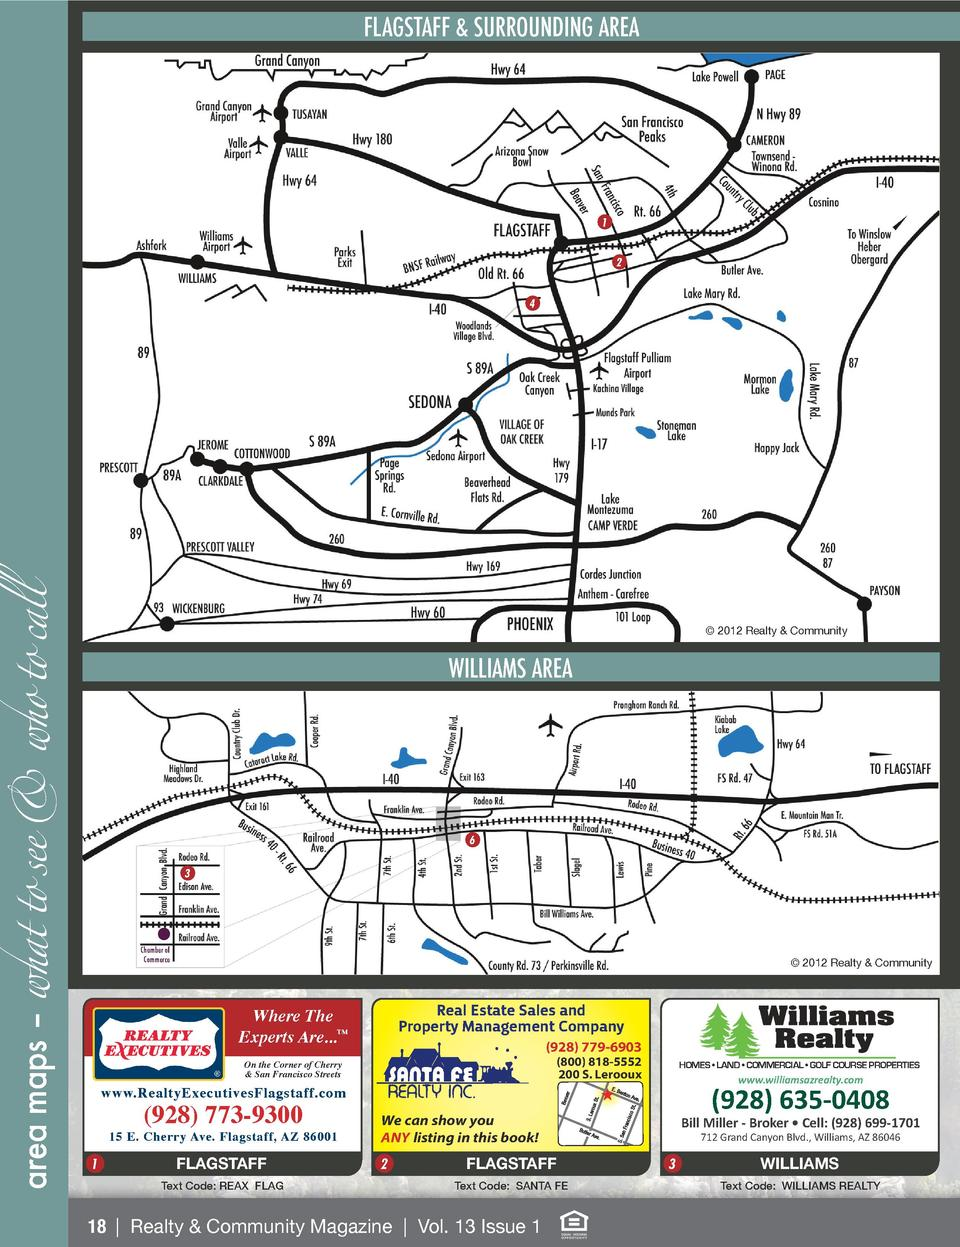 FLAGSTAFF   SURROUNDING AREA  1 2  area maps     what to see   who to call  4     2012 Realty   Community  WILLIAMS AREA  ...